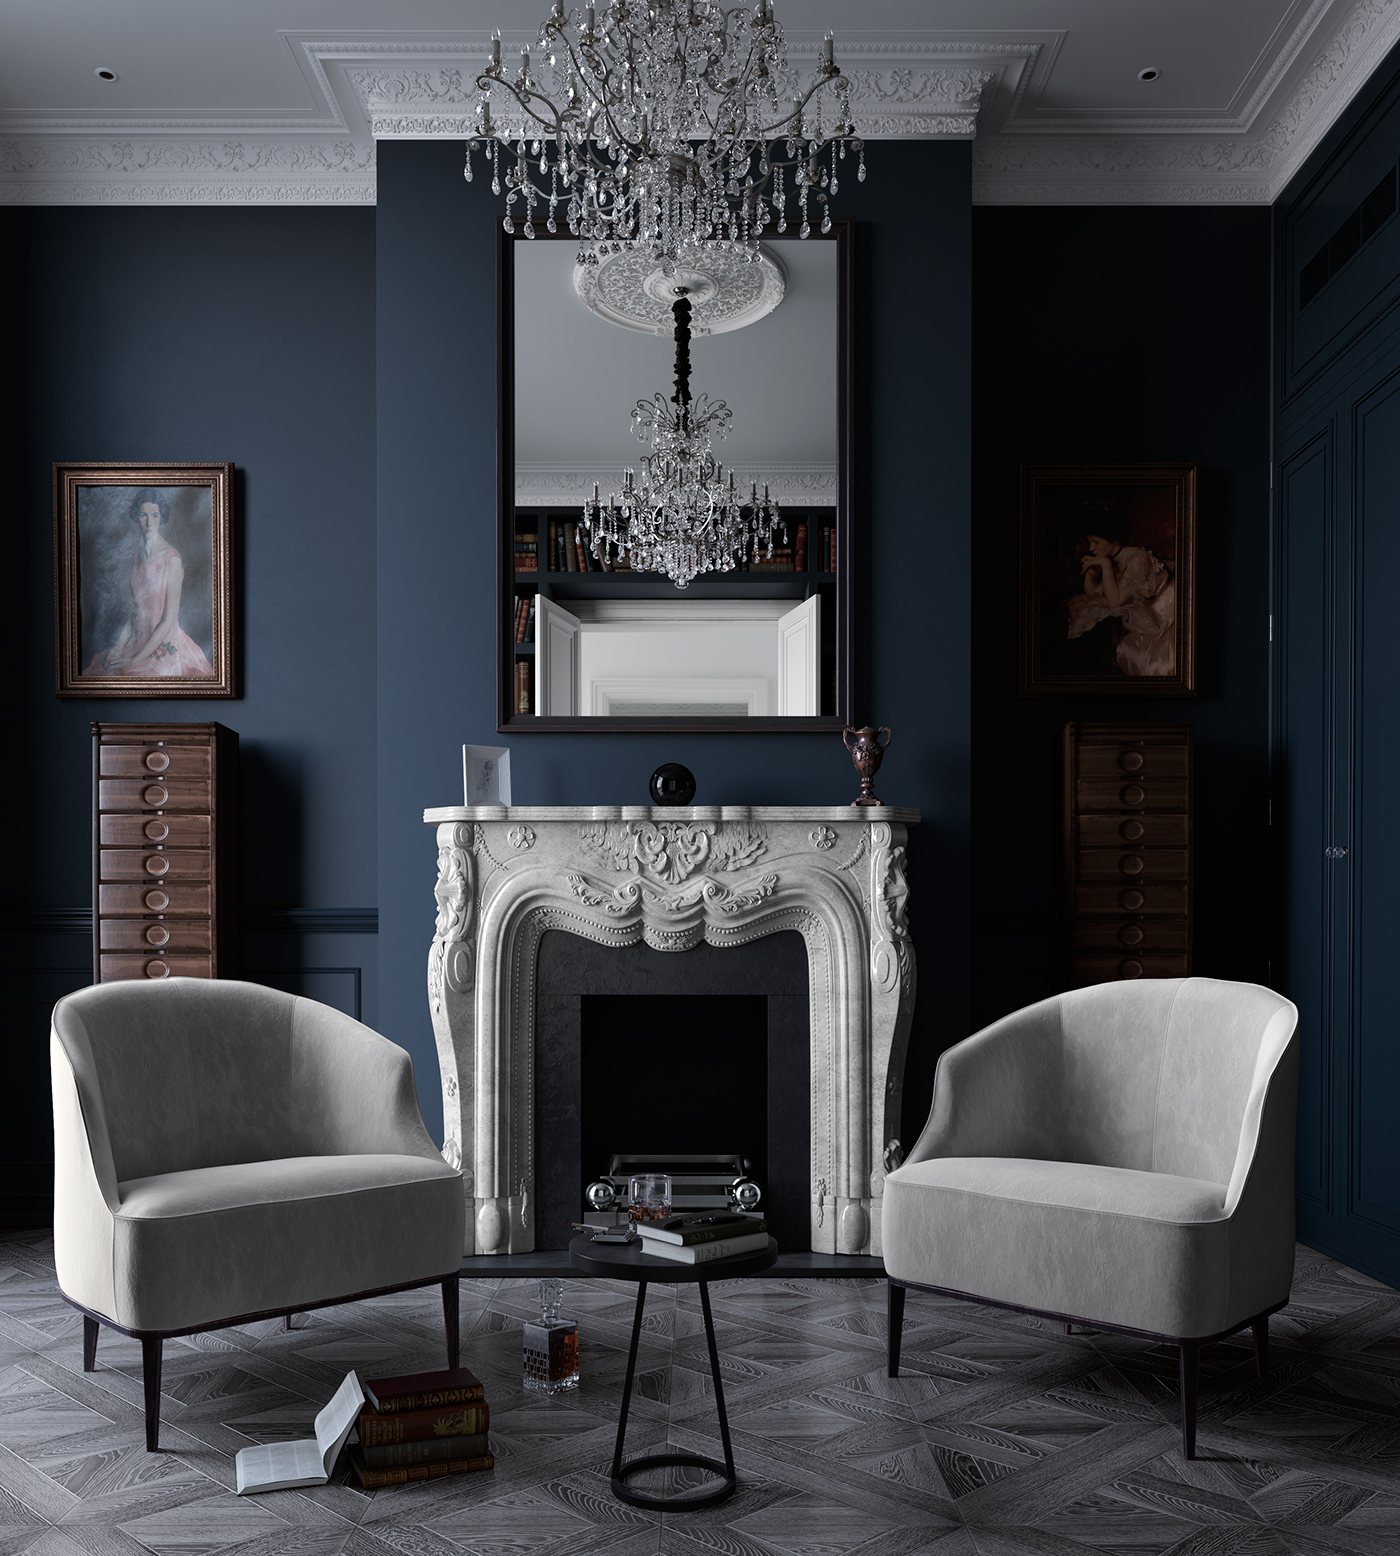 Neoclassical interior on Behance